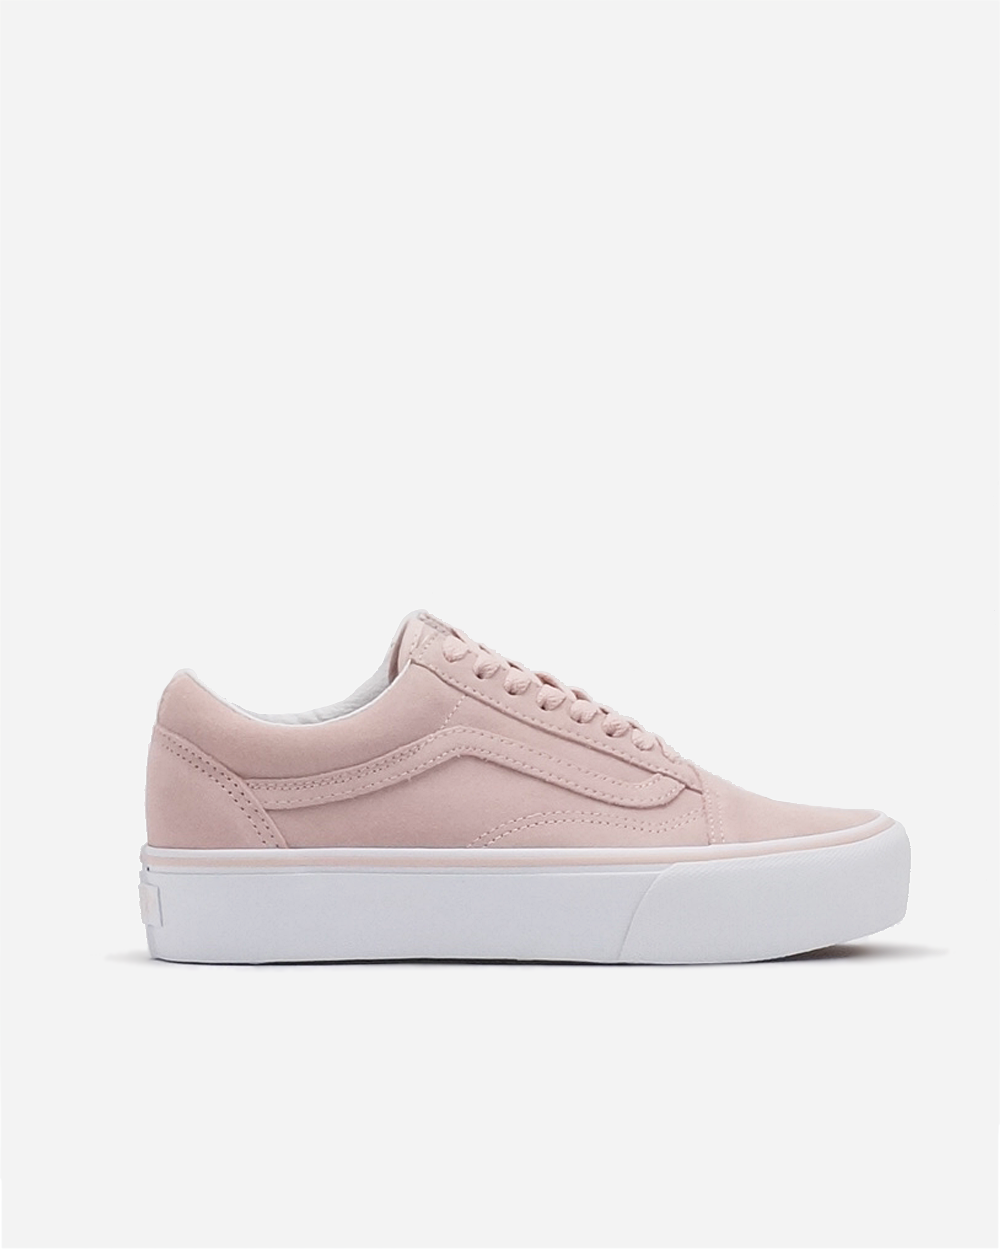 Vans Old Skool Platform Sepia Rose True White Womens Sneaker VNA3B3UPVE 15a7171d7